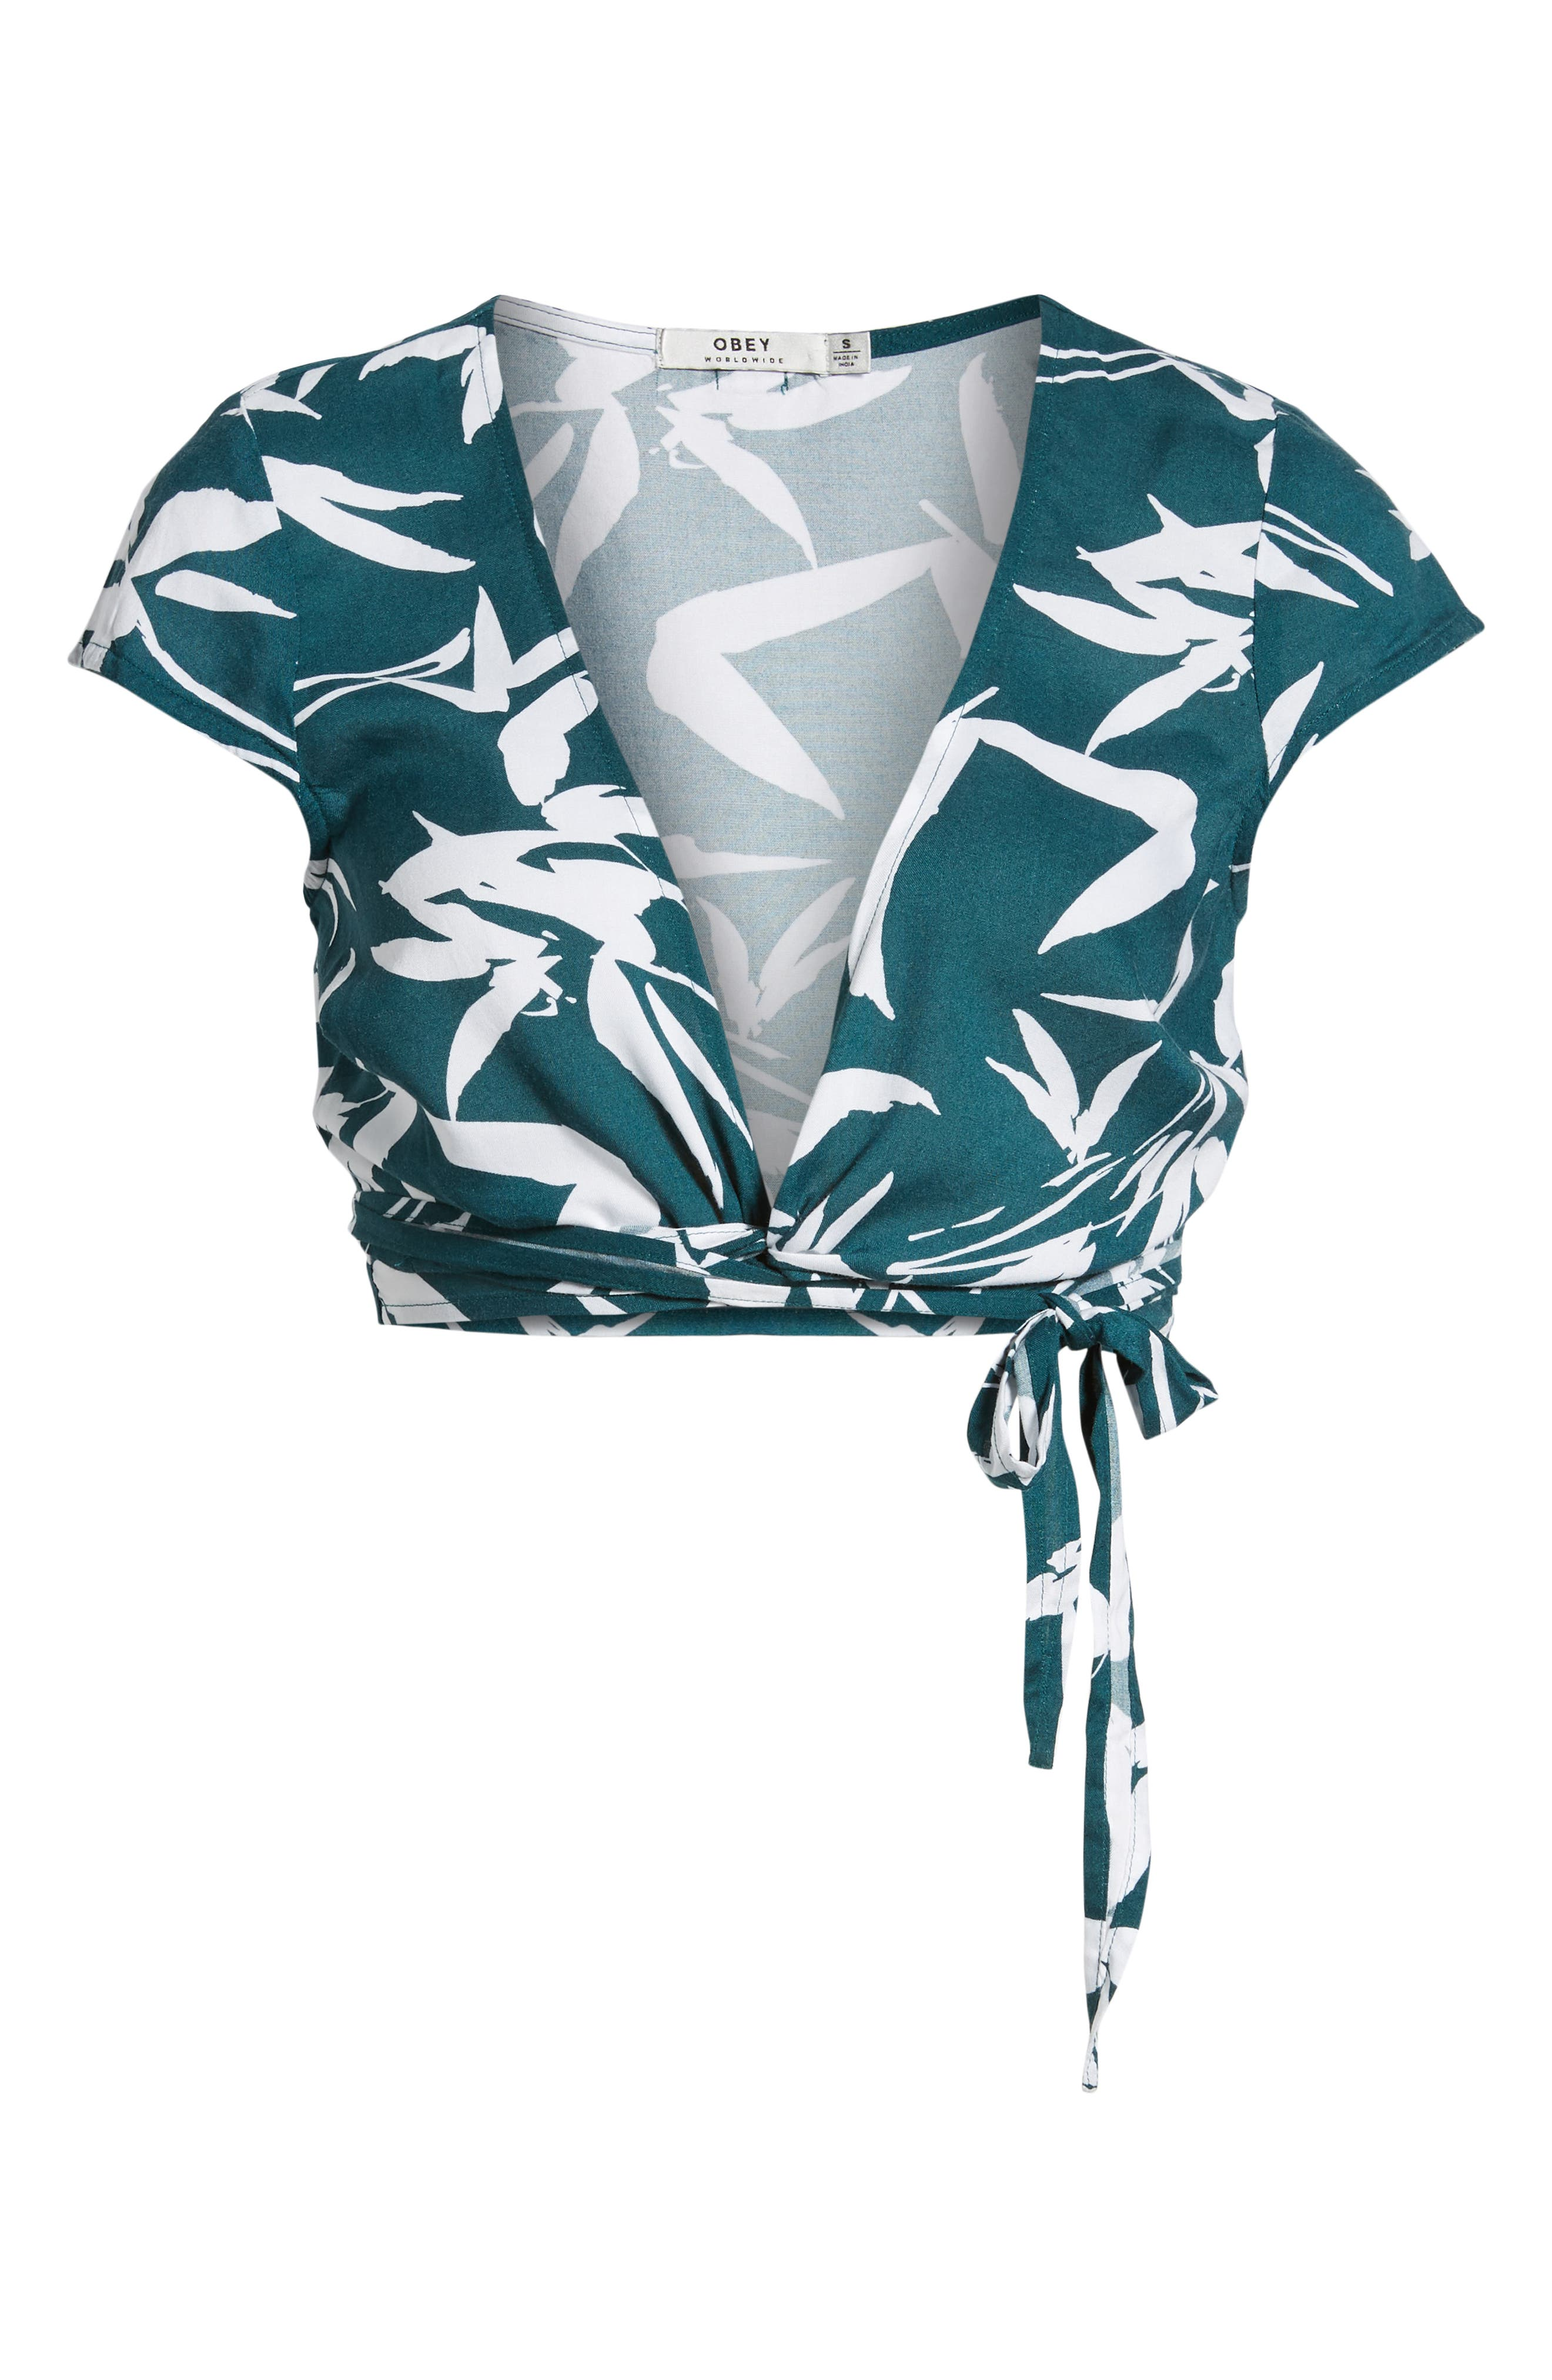 Calico Leaf Print Wrap Top,                             Alternate thumbnail 6, color,                             300